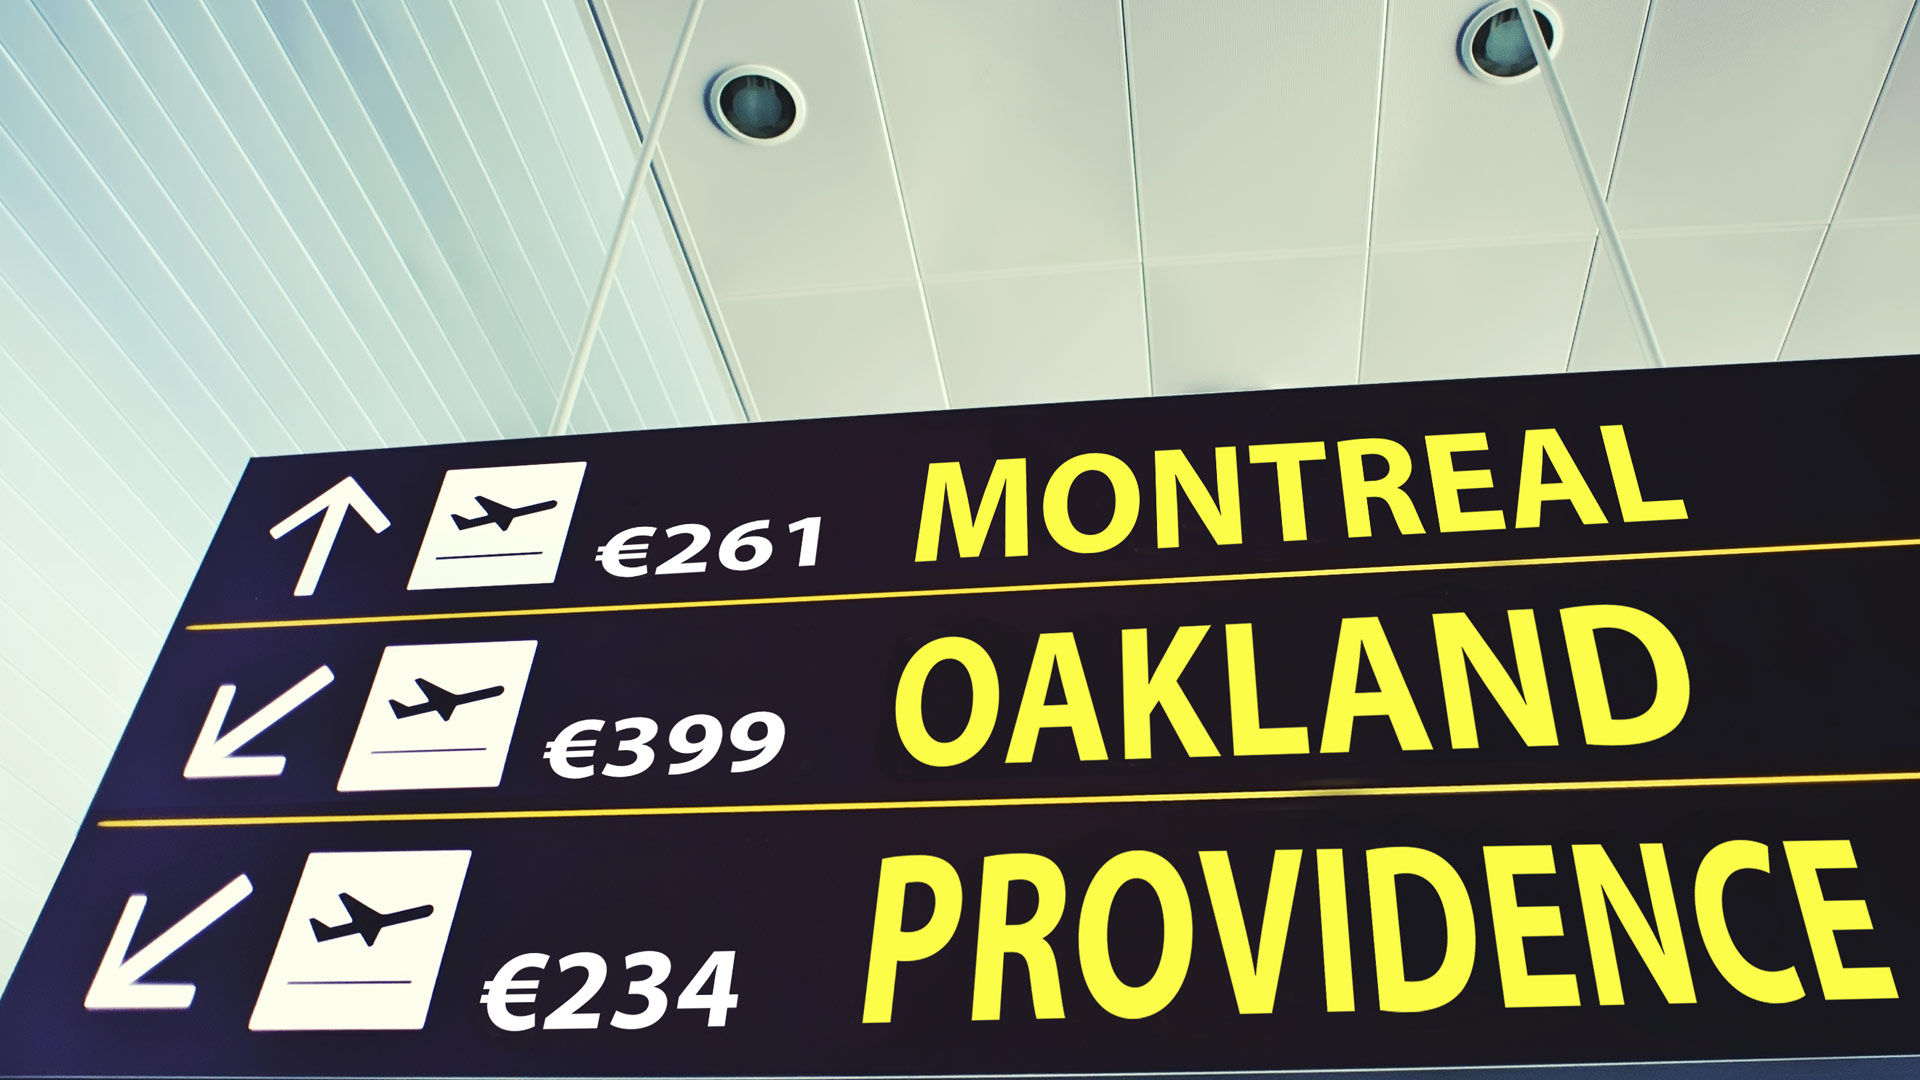 €261 Montreal; €399 Oakland; €234 Providence.